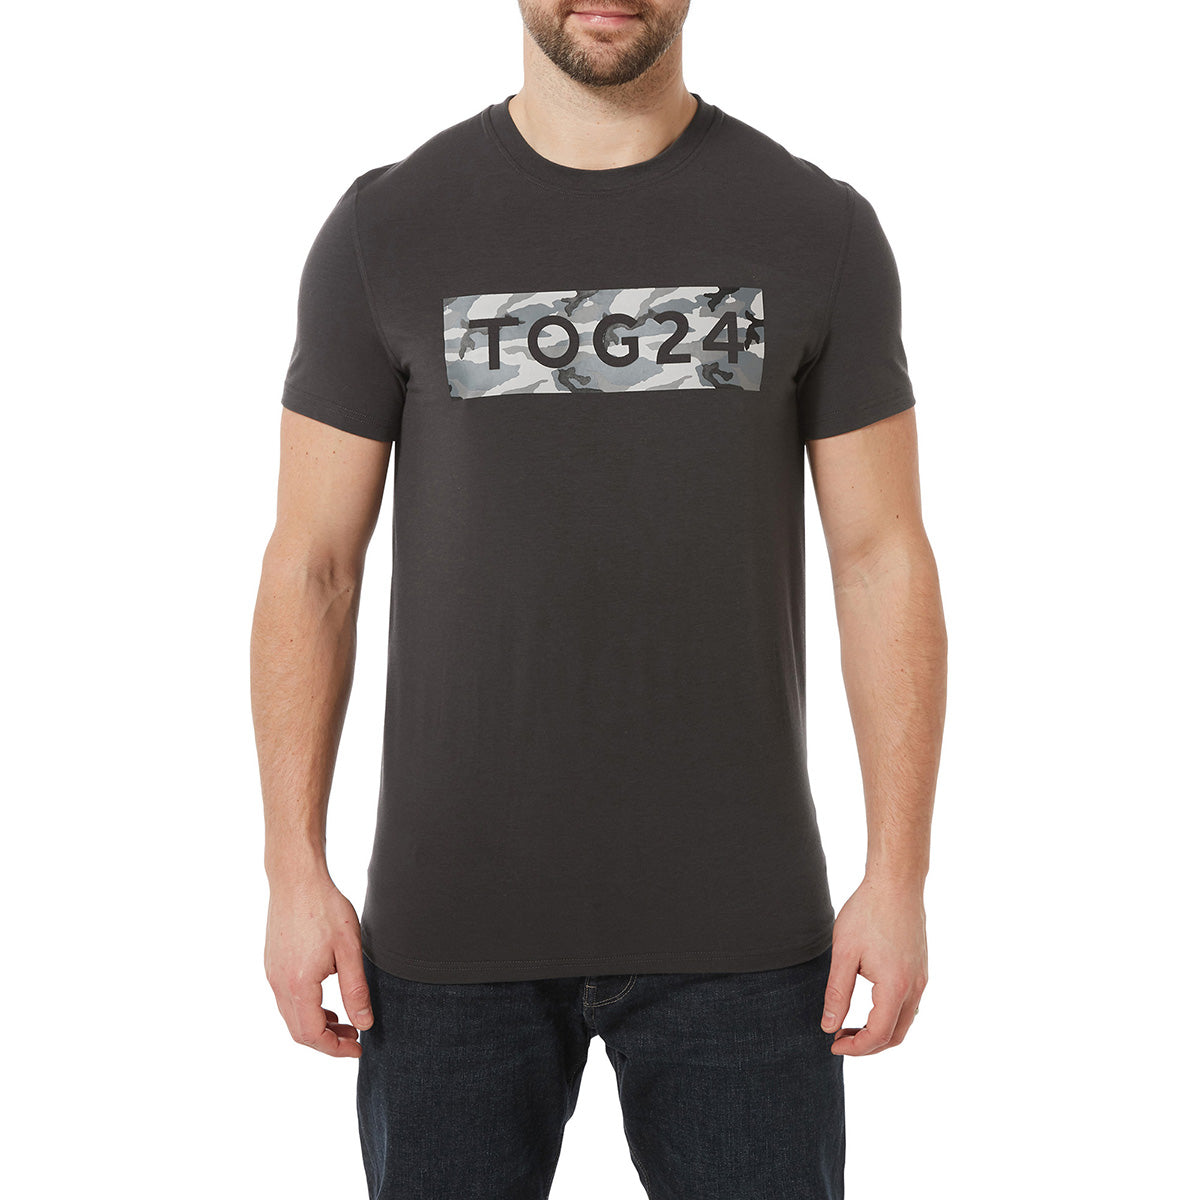 Towler Mens Performance Graphic T-Shirt - Charcoal